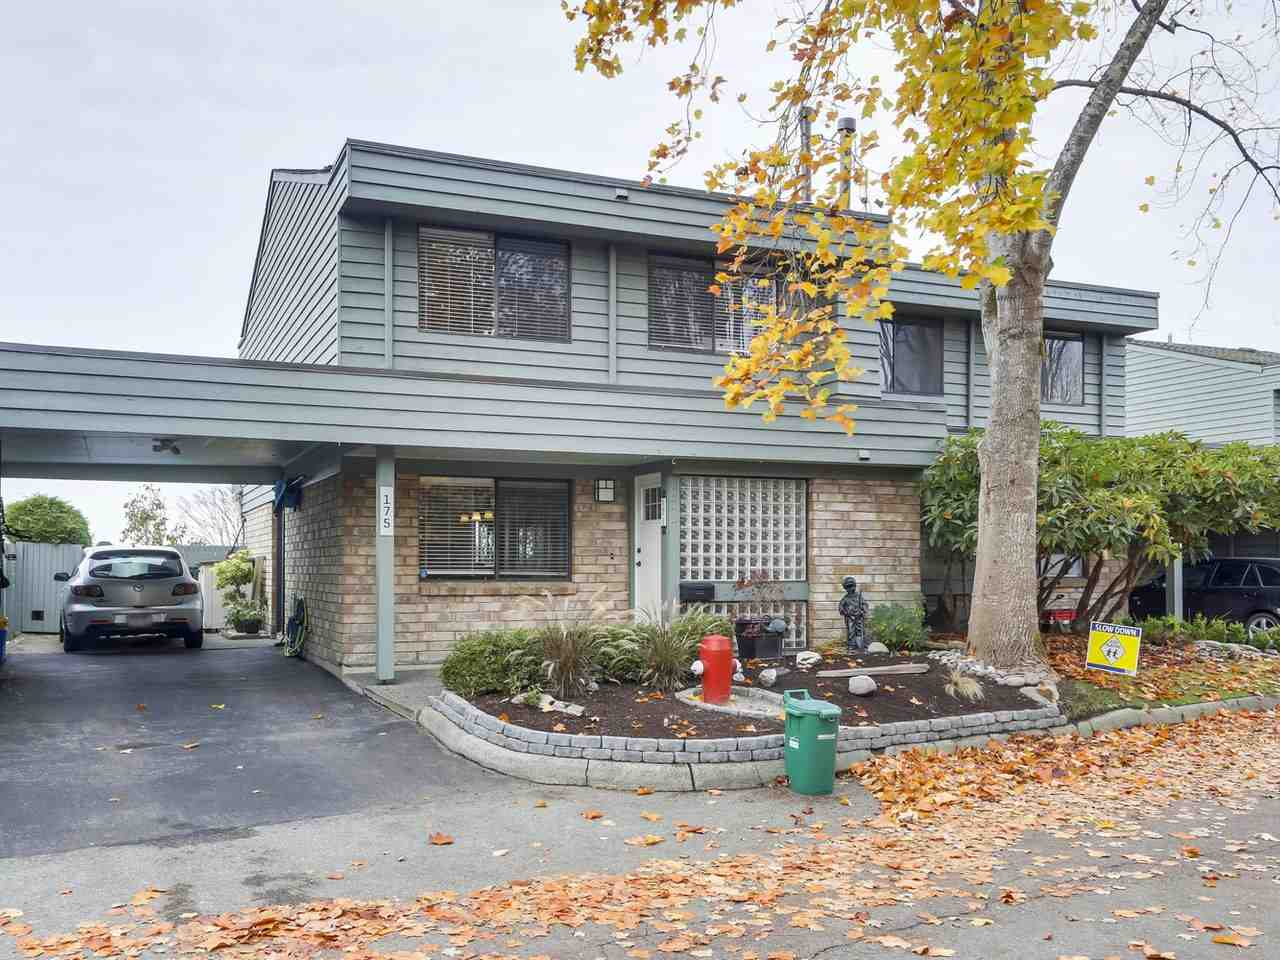 """An Absolute Gem, WATERFRONT End Unit in Popular """"Edgewater Park"""" along West Richmond's famous dyke walk! This home has been totally and expensively updated: Dream kitchen with Island & Granite Counters; Gas fireplace; frosted doors; french doors to patio; recessed lights; new ceilings; crown moulding, and a STUNNING , enlarged Main bathroom. Master Bedroom has also been enlarged and includes extra window to take advantage of the gorgeous Island and sunset views! Beautiful and large Backyard is excellent for entertaining. Up to 3 """"Tandem"""" Carport parking spots. Nicely landscaped front yard. Quiet Location within the complex. Must be seen to be appreciated, this really is a special unit! OPEN SUNDAY, NOV 18, 2 - 4"""